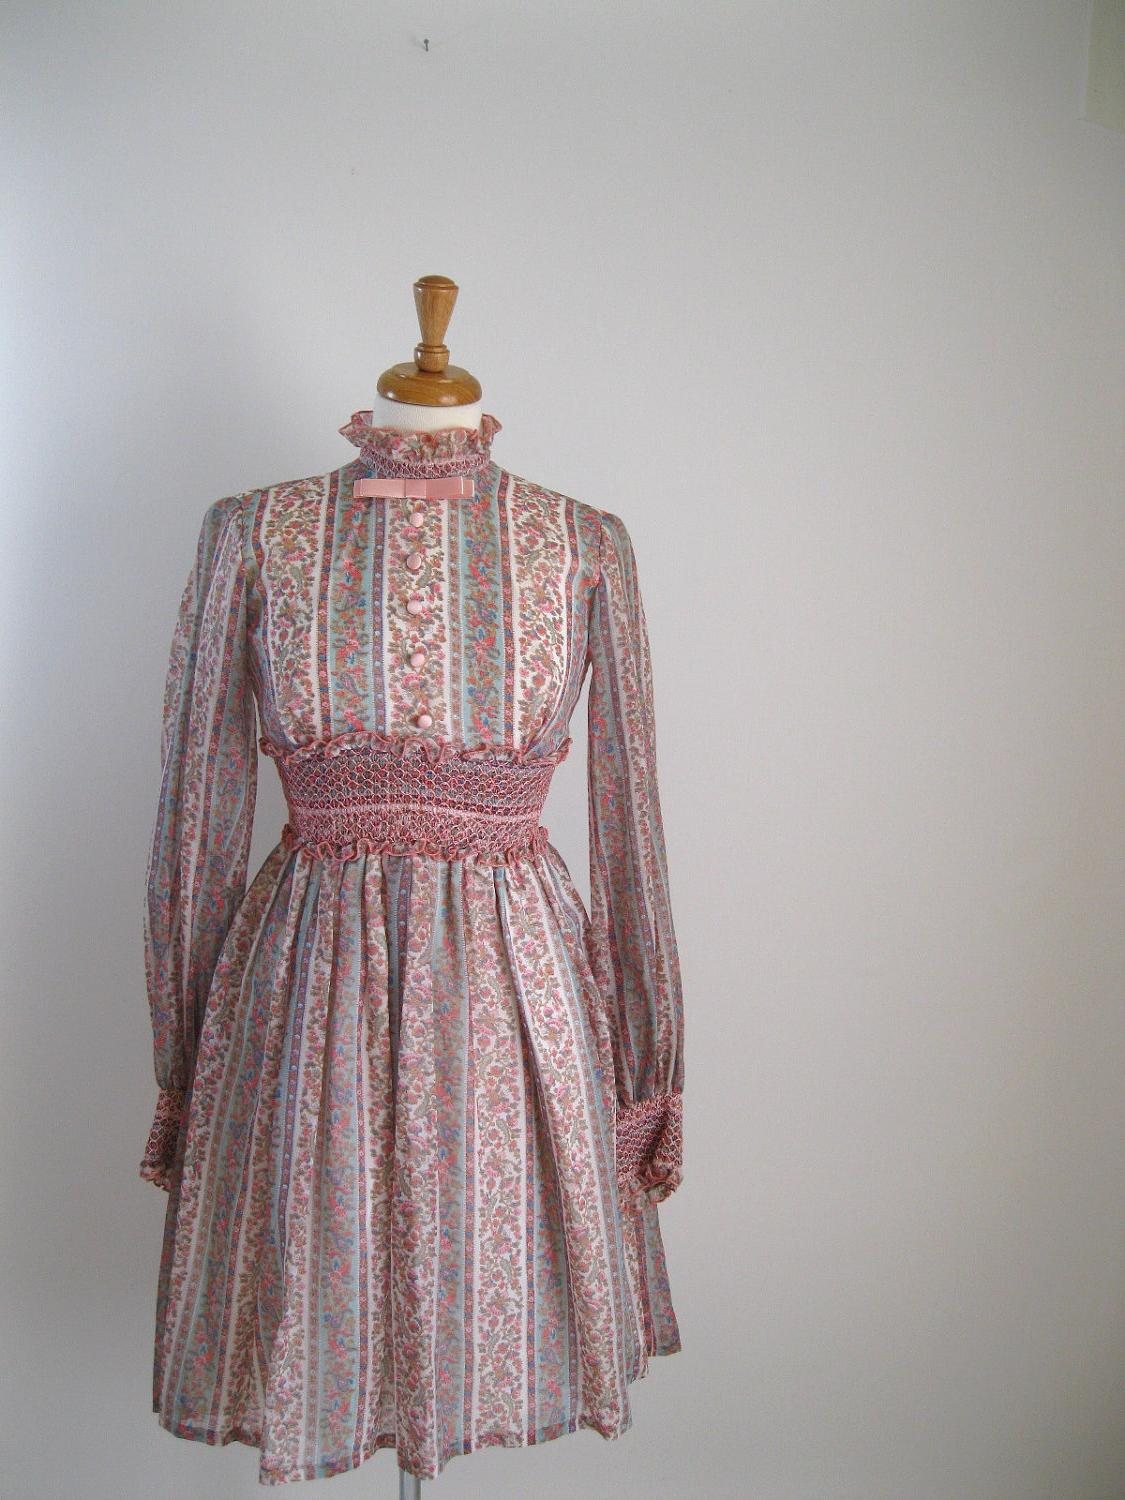 1960s Dress Pink Victorian Wedding. From gogovintage